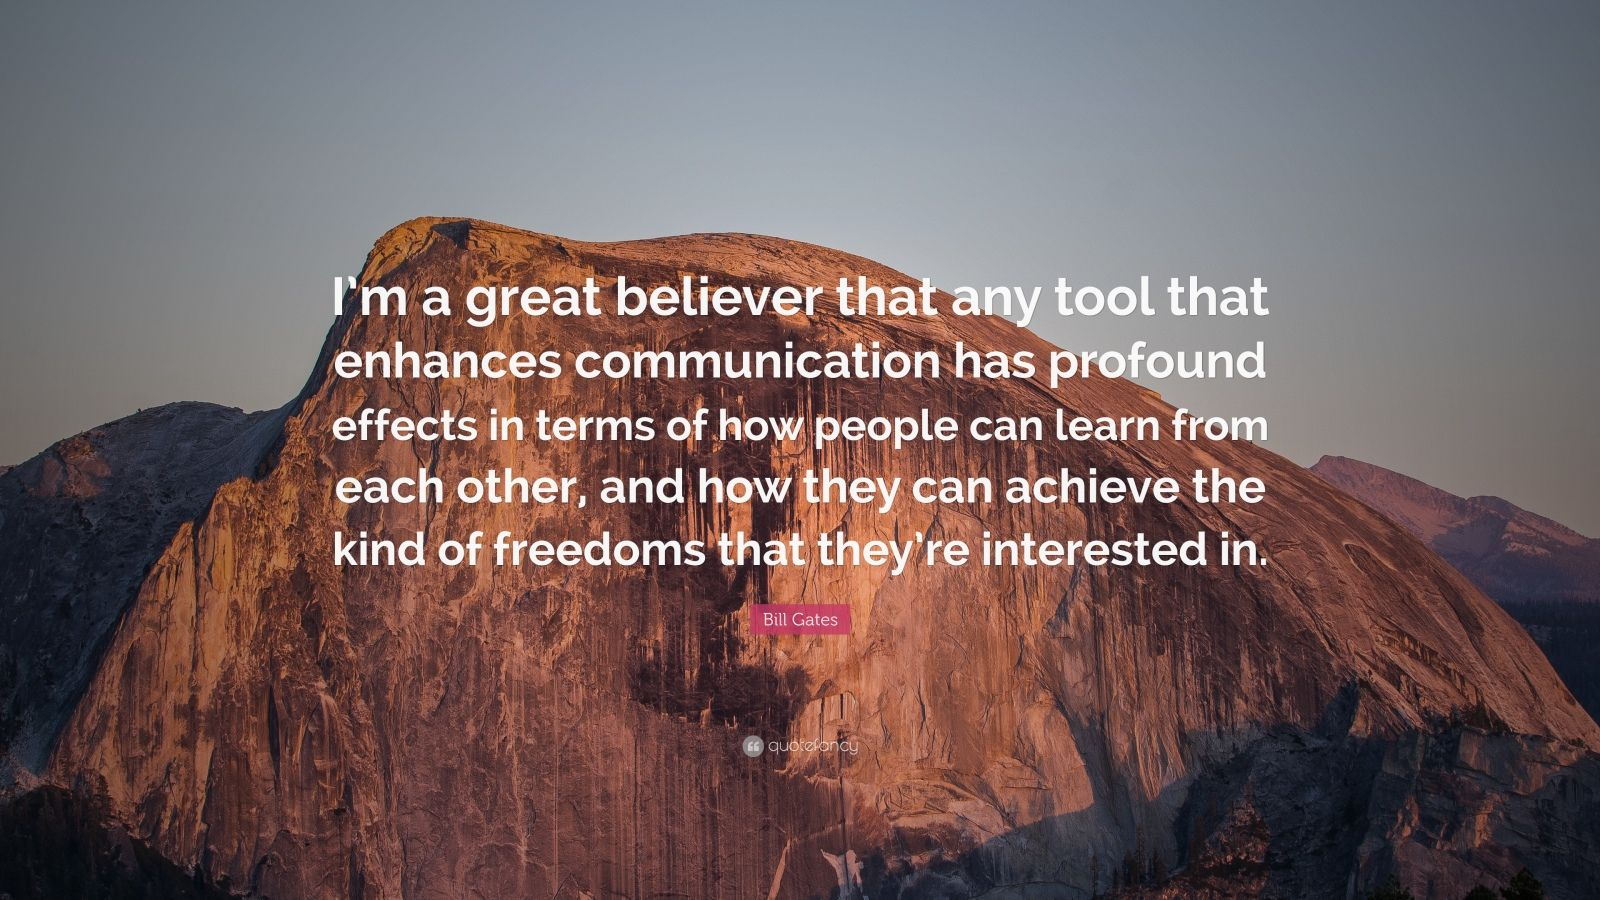 """Bill Gates Quote: """"I'm a great believer that any tool that enhances communication has profound effects in terms of how people can learn from each other, and how they can achieve the kind of freedoms that they're interested in."""""""